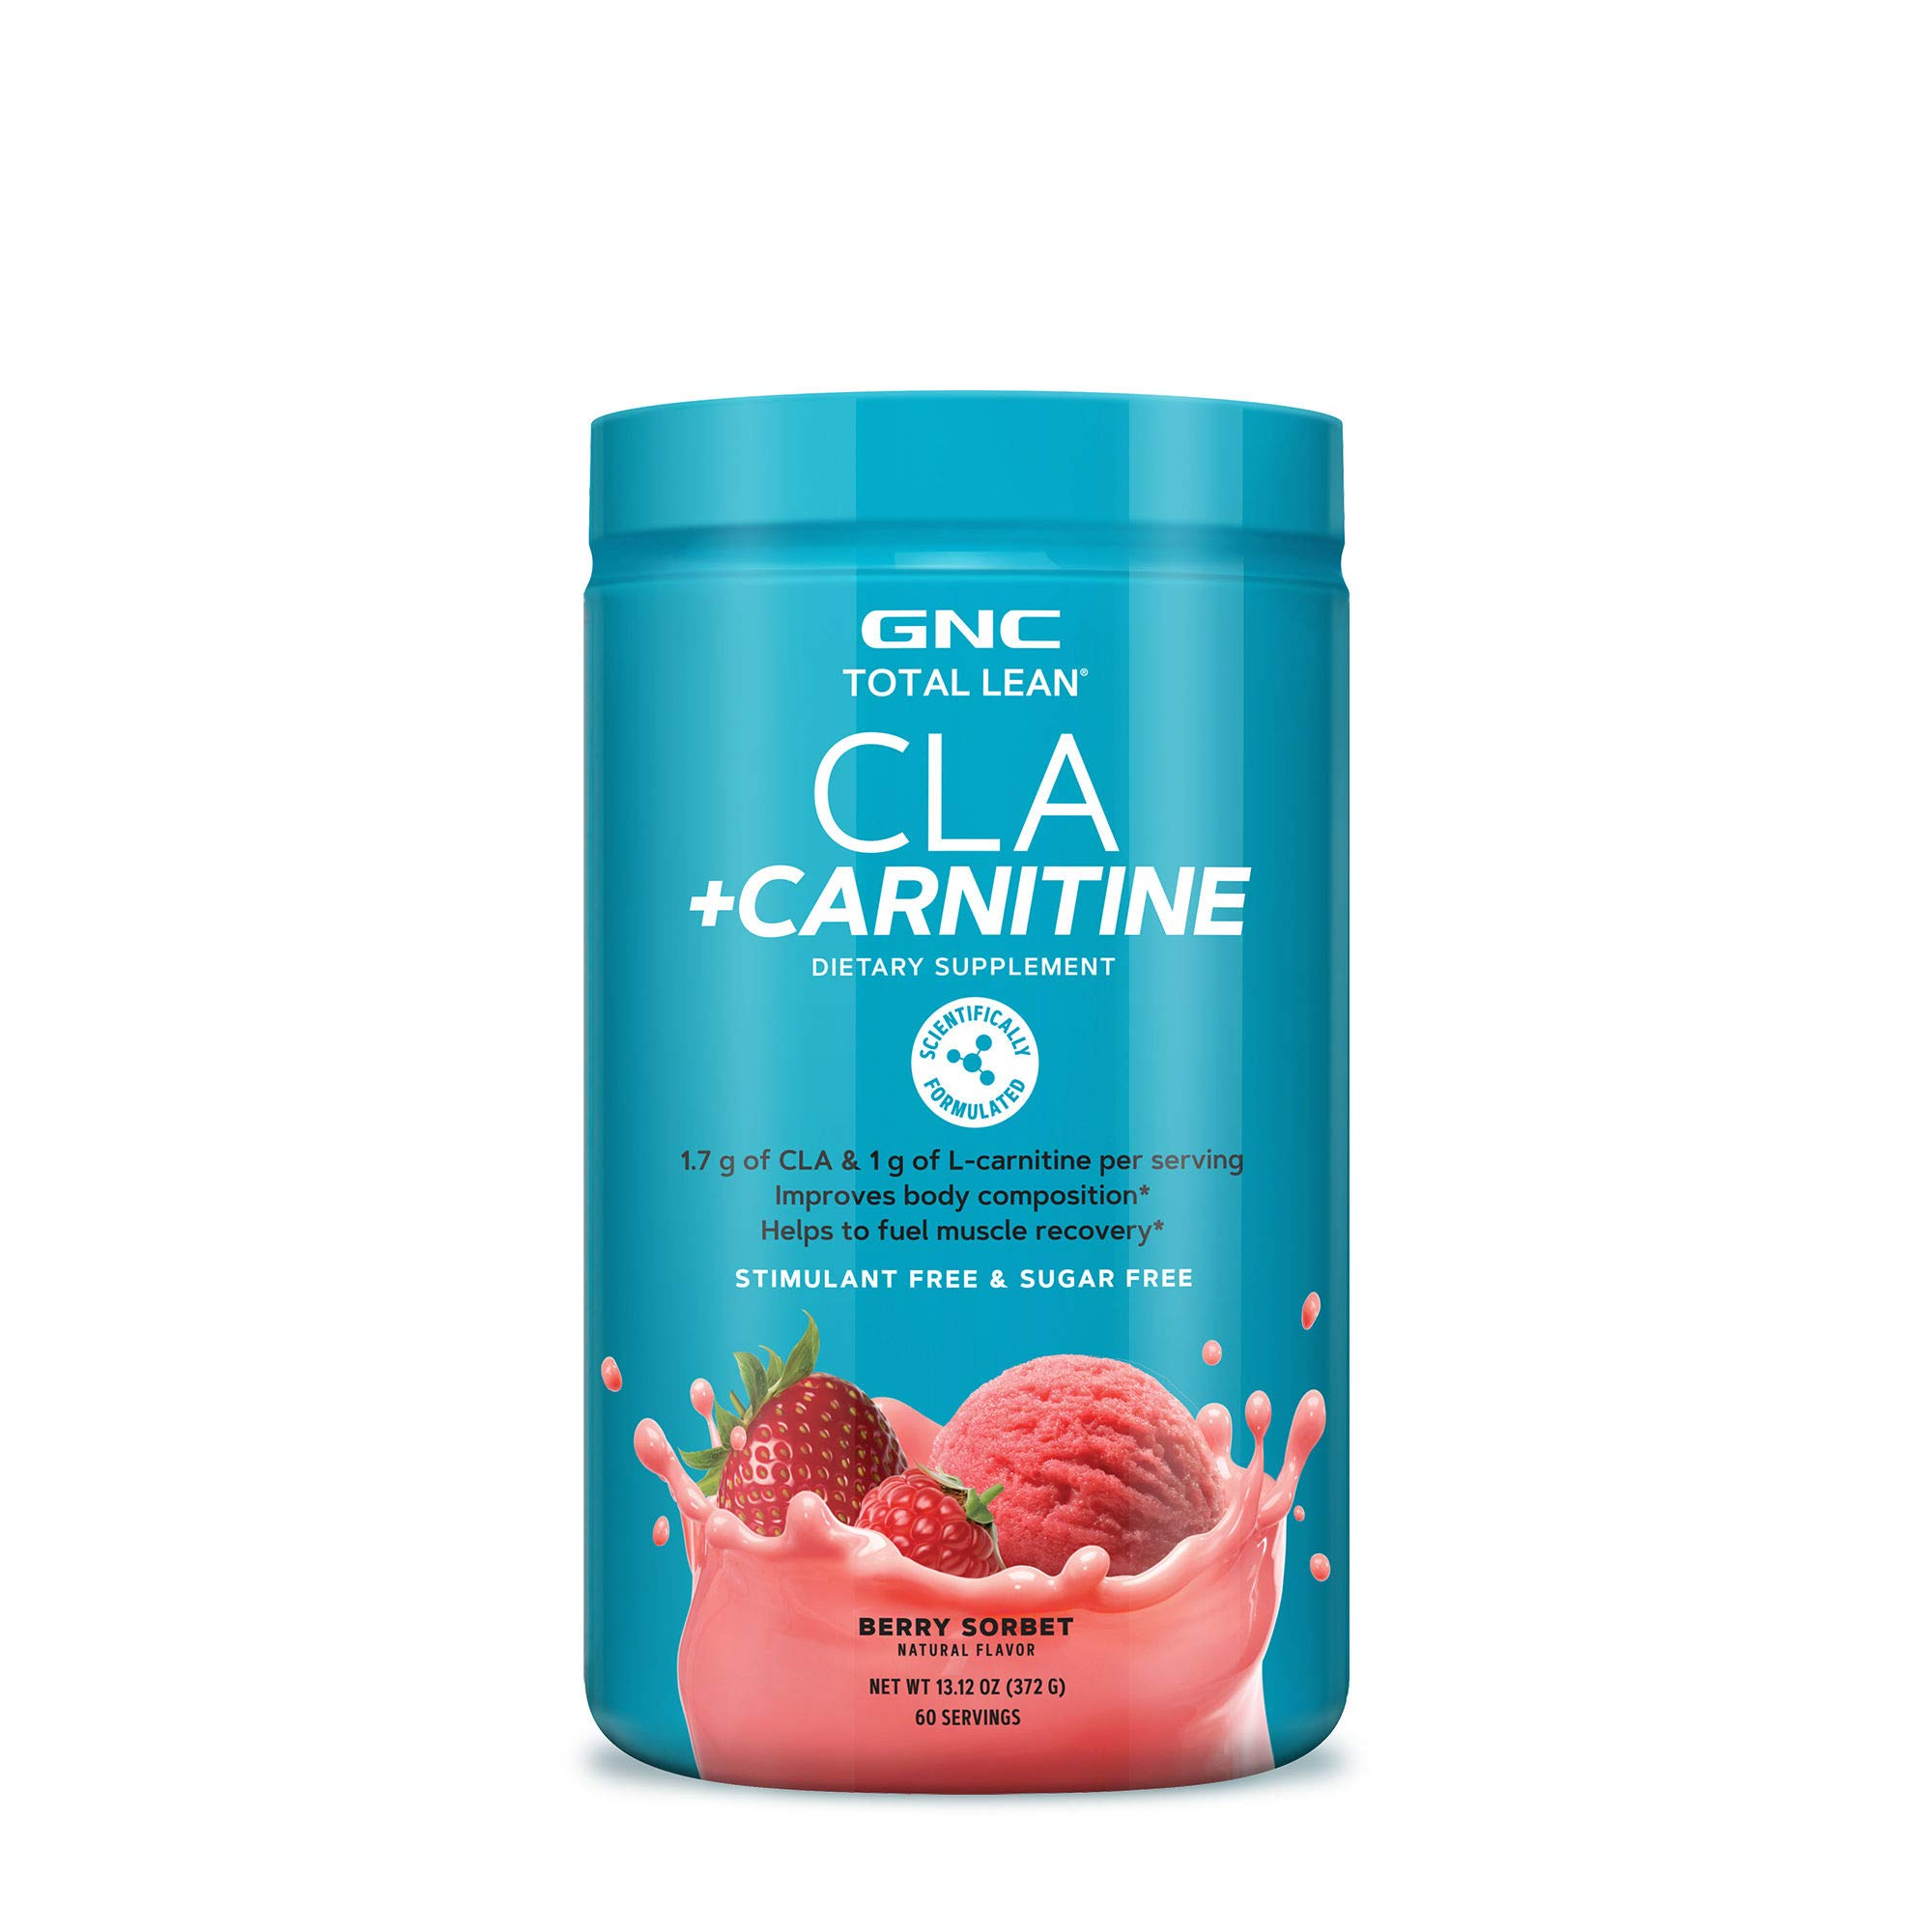 GNC Total Lean CLA Carnitine - Berry Sorbet by GNC (Image #1)